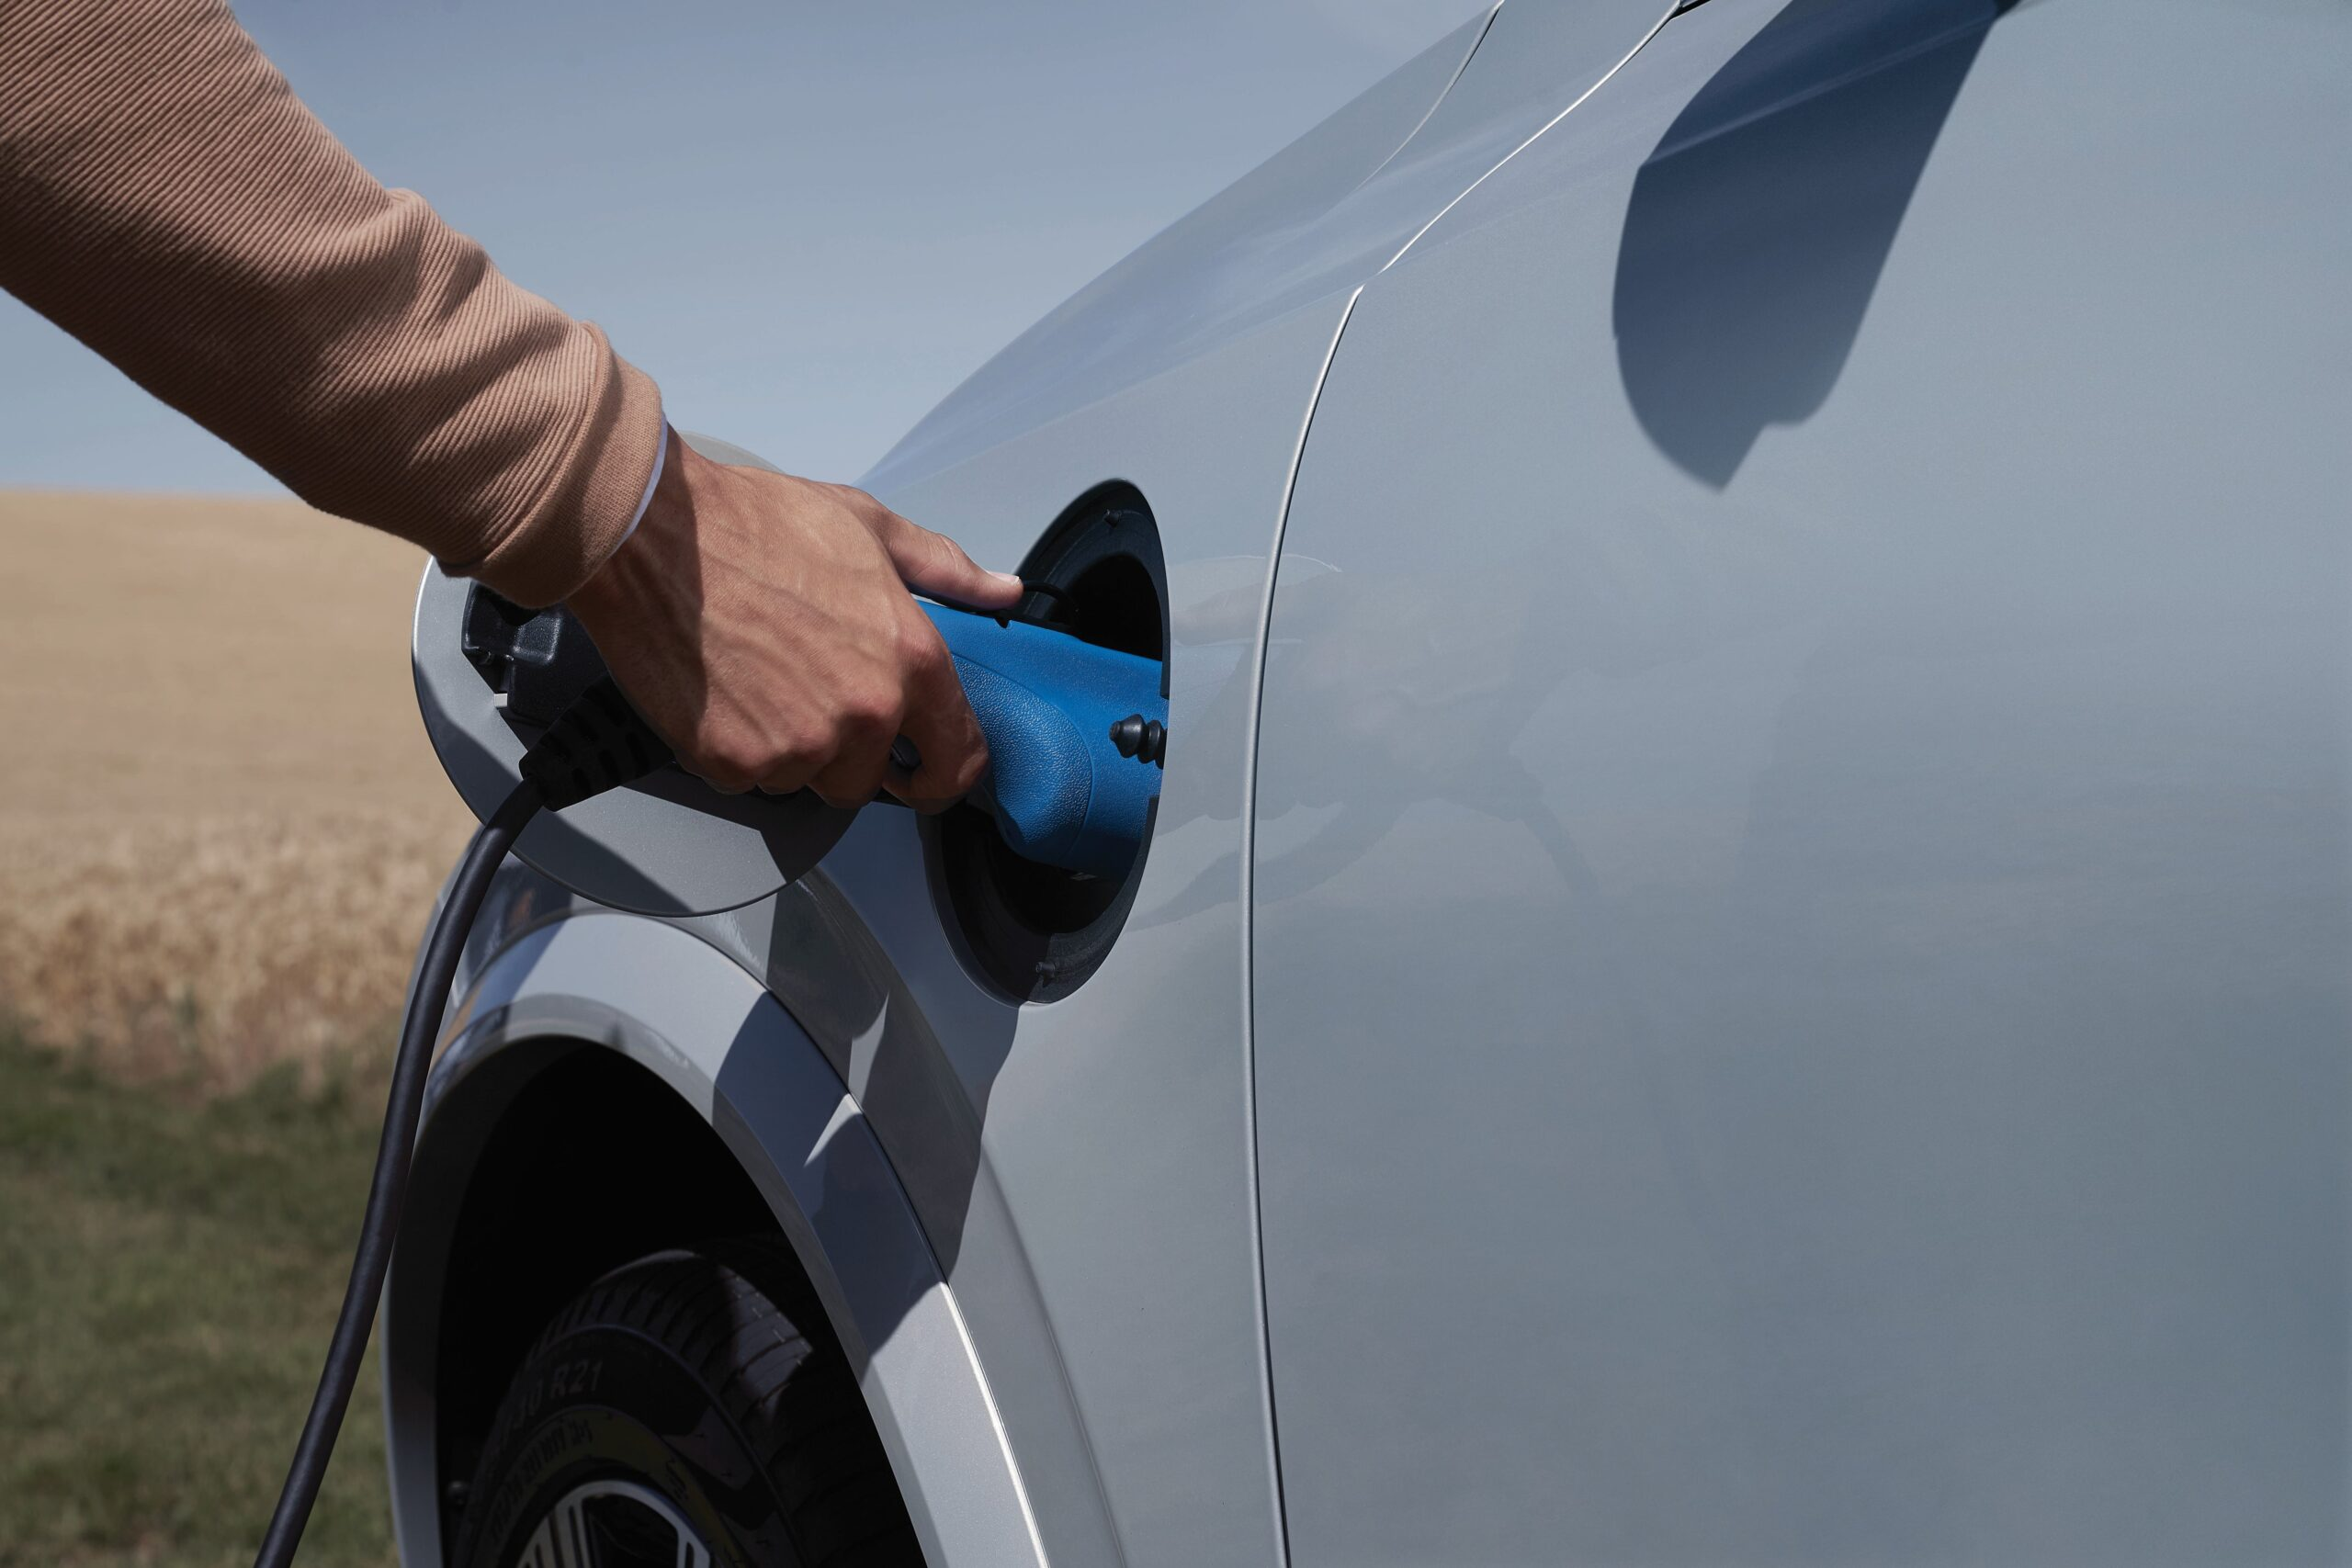 Charging your electric vehicle at home, what do you need to know?